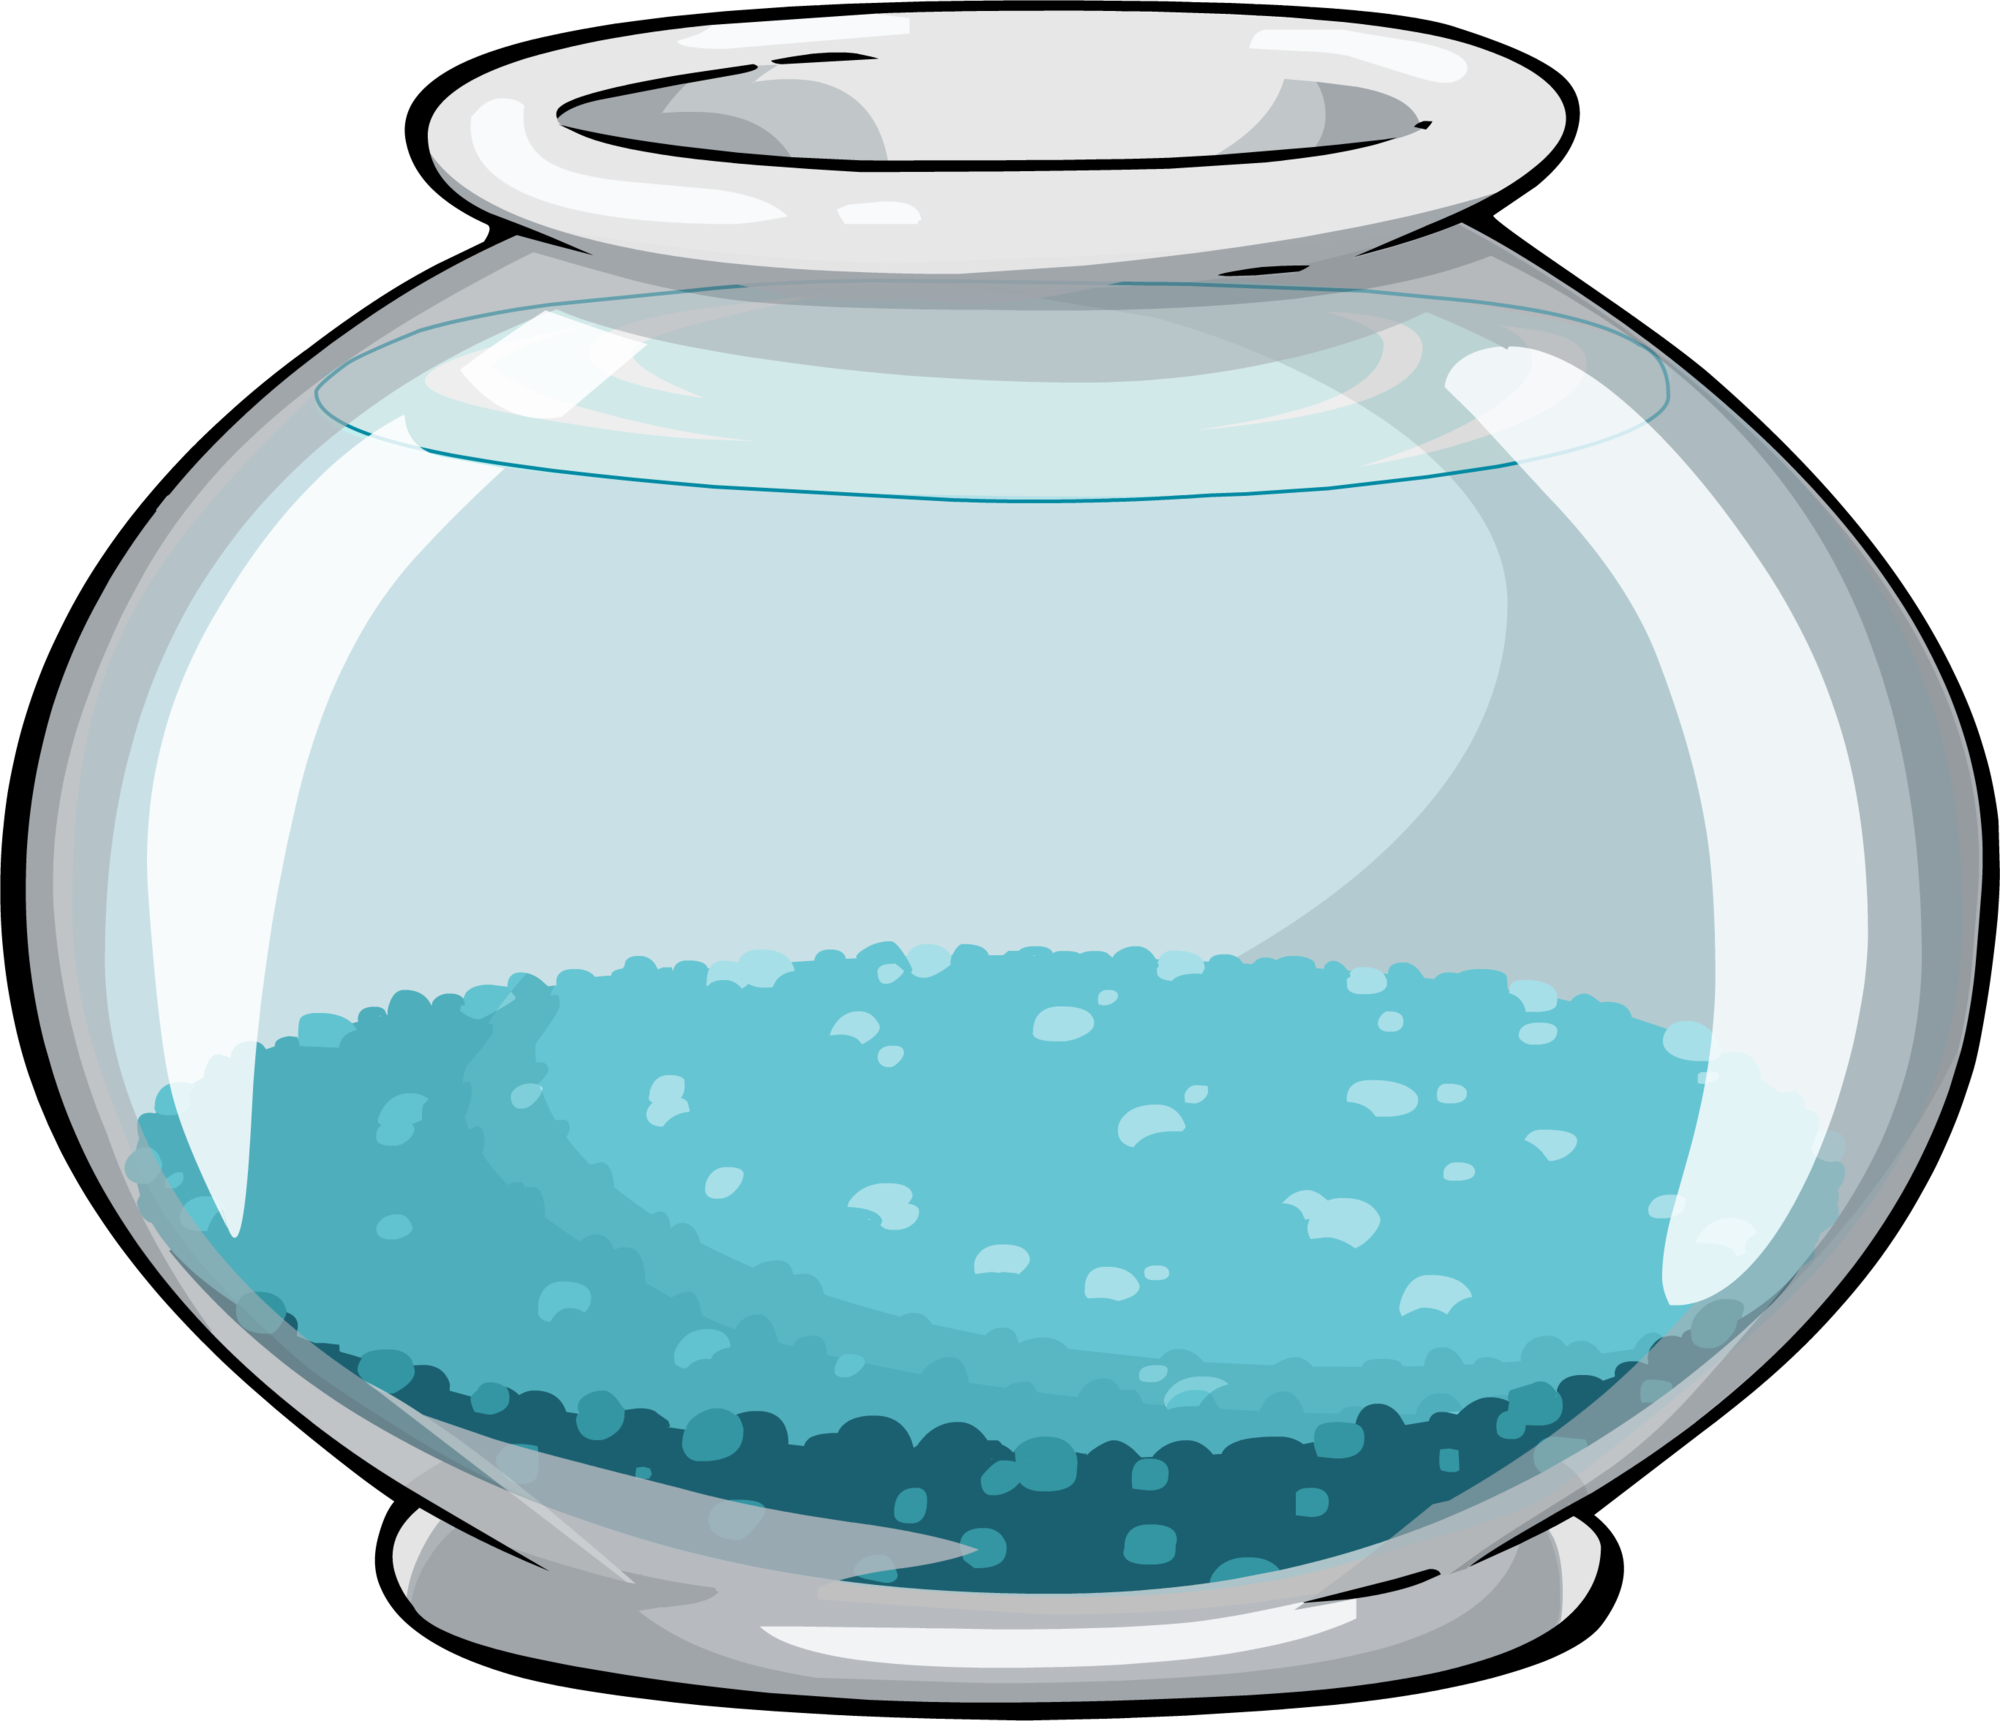 Fish clipart bowl. Picture free download clip